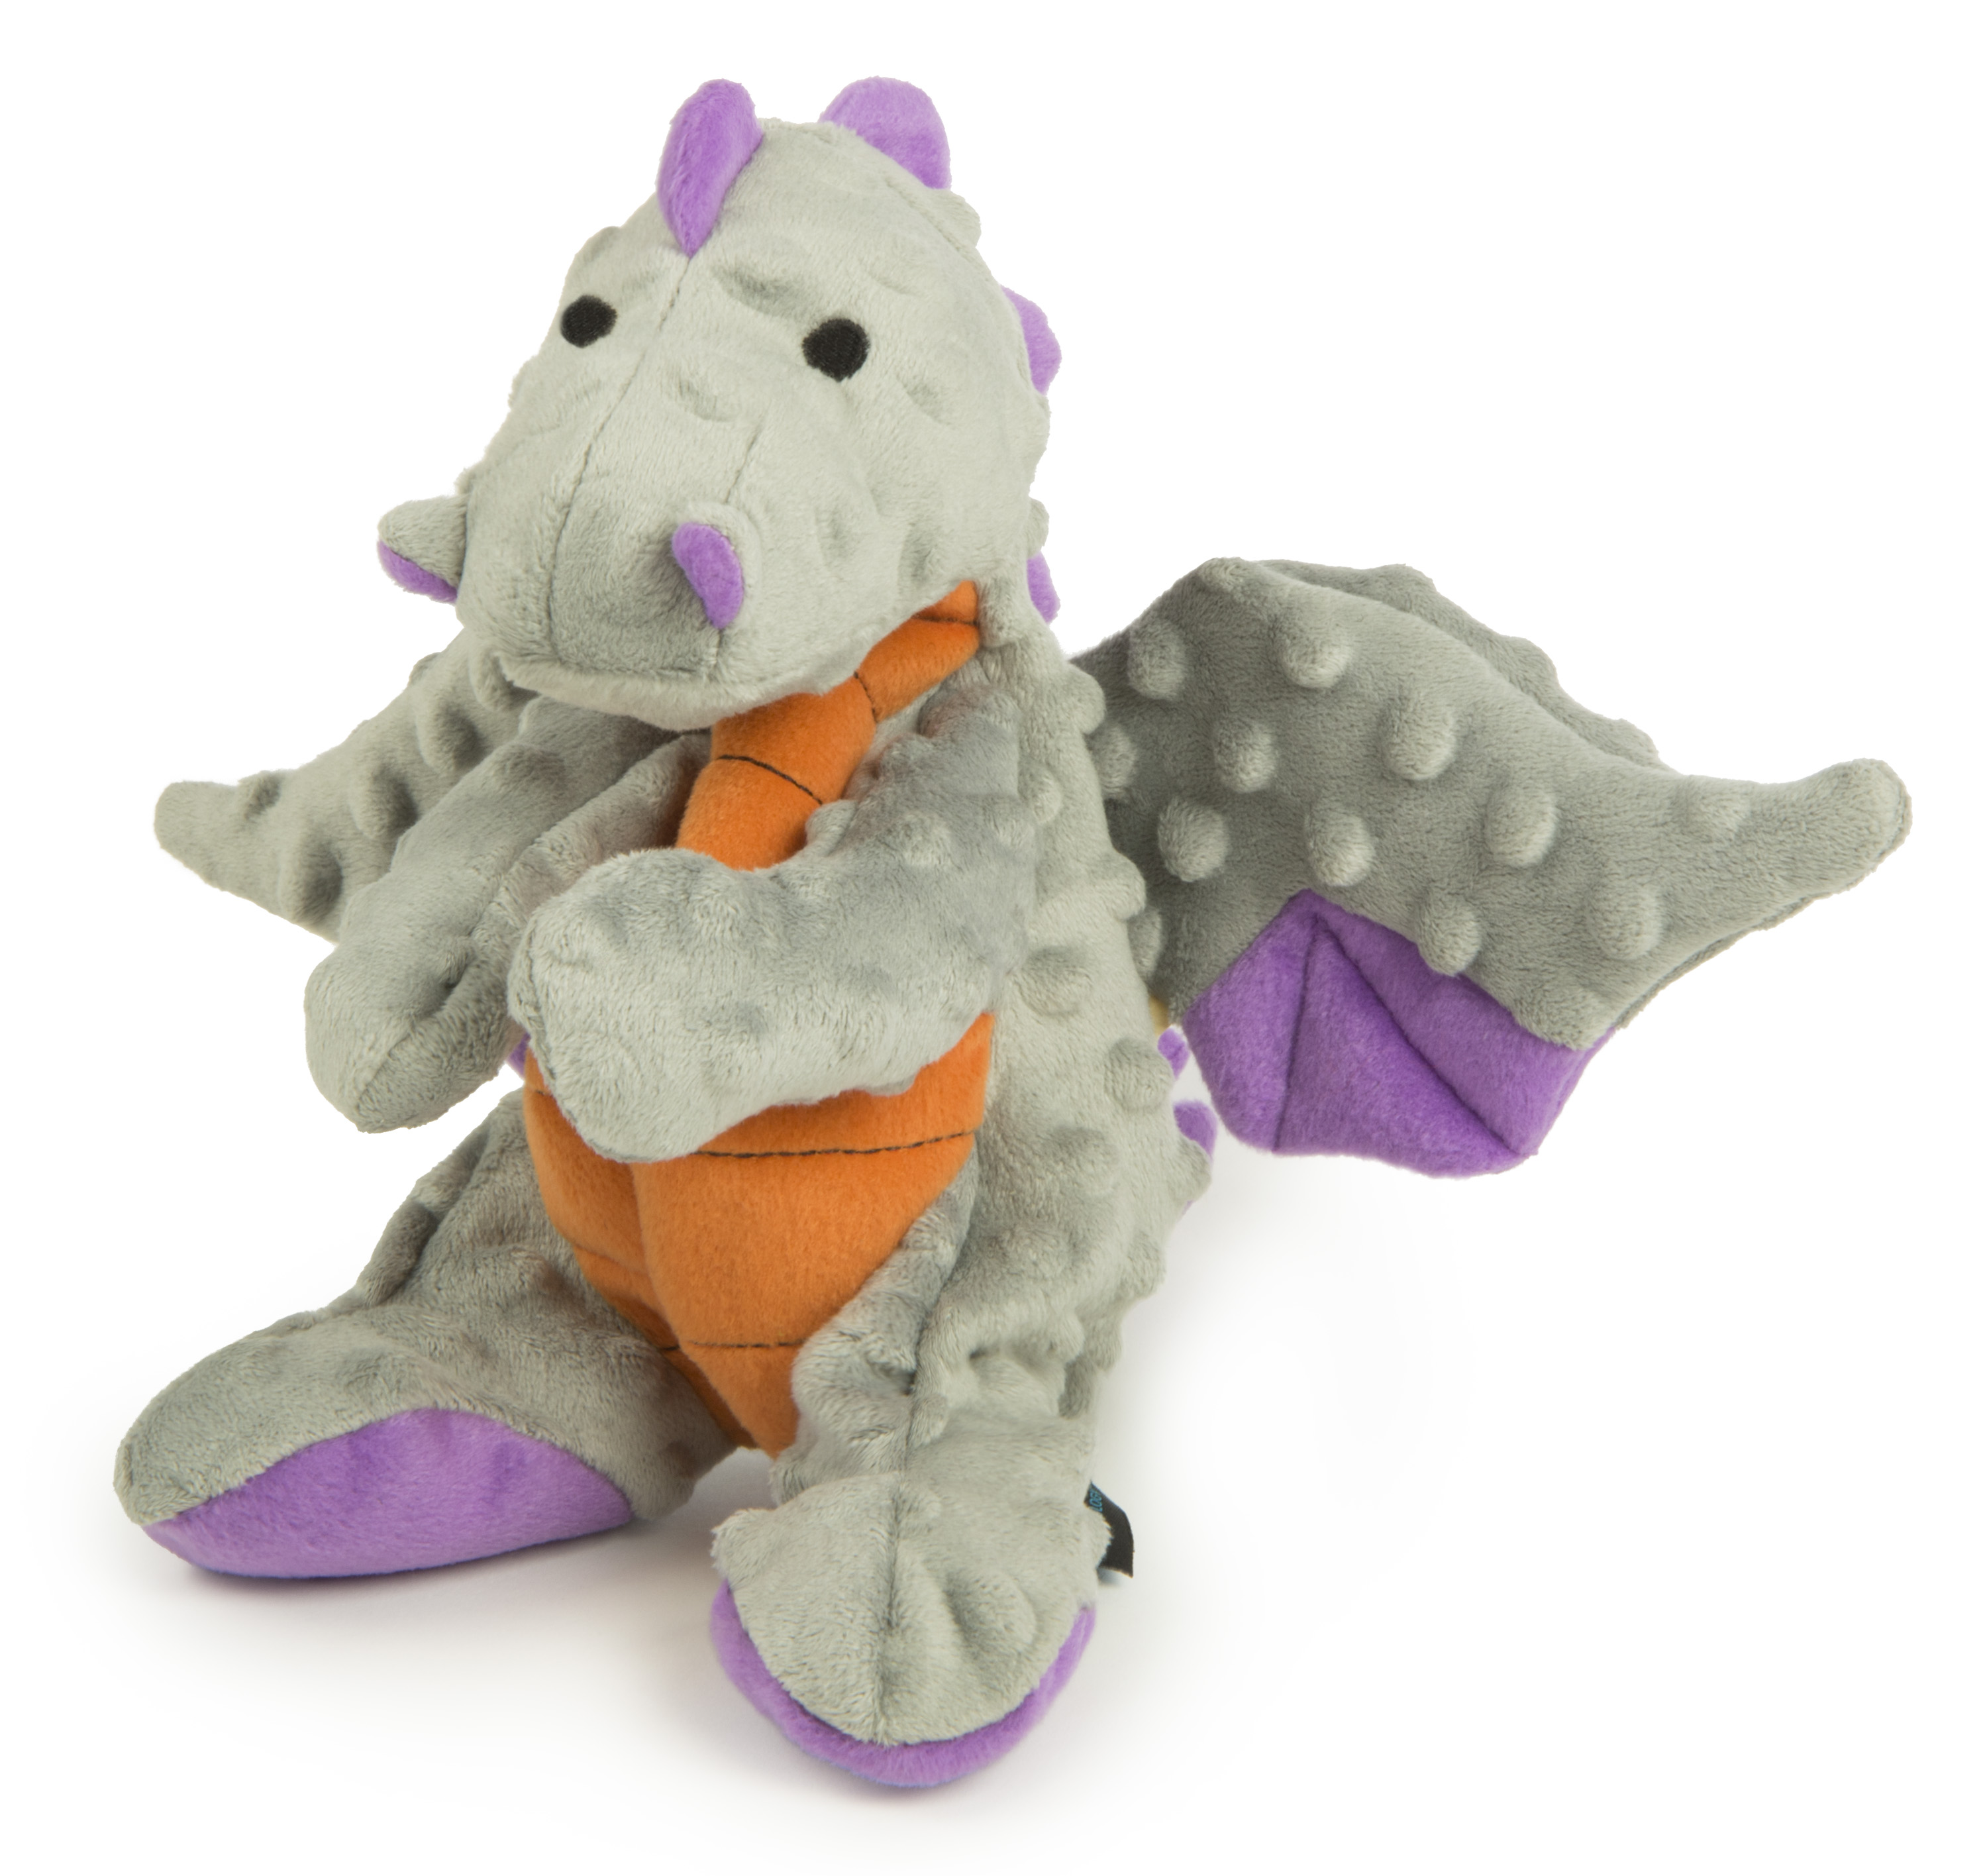 goDog® Dragons with Chew Guard Technology™ Plush Squeaker Dog Toy, Large, Gray